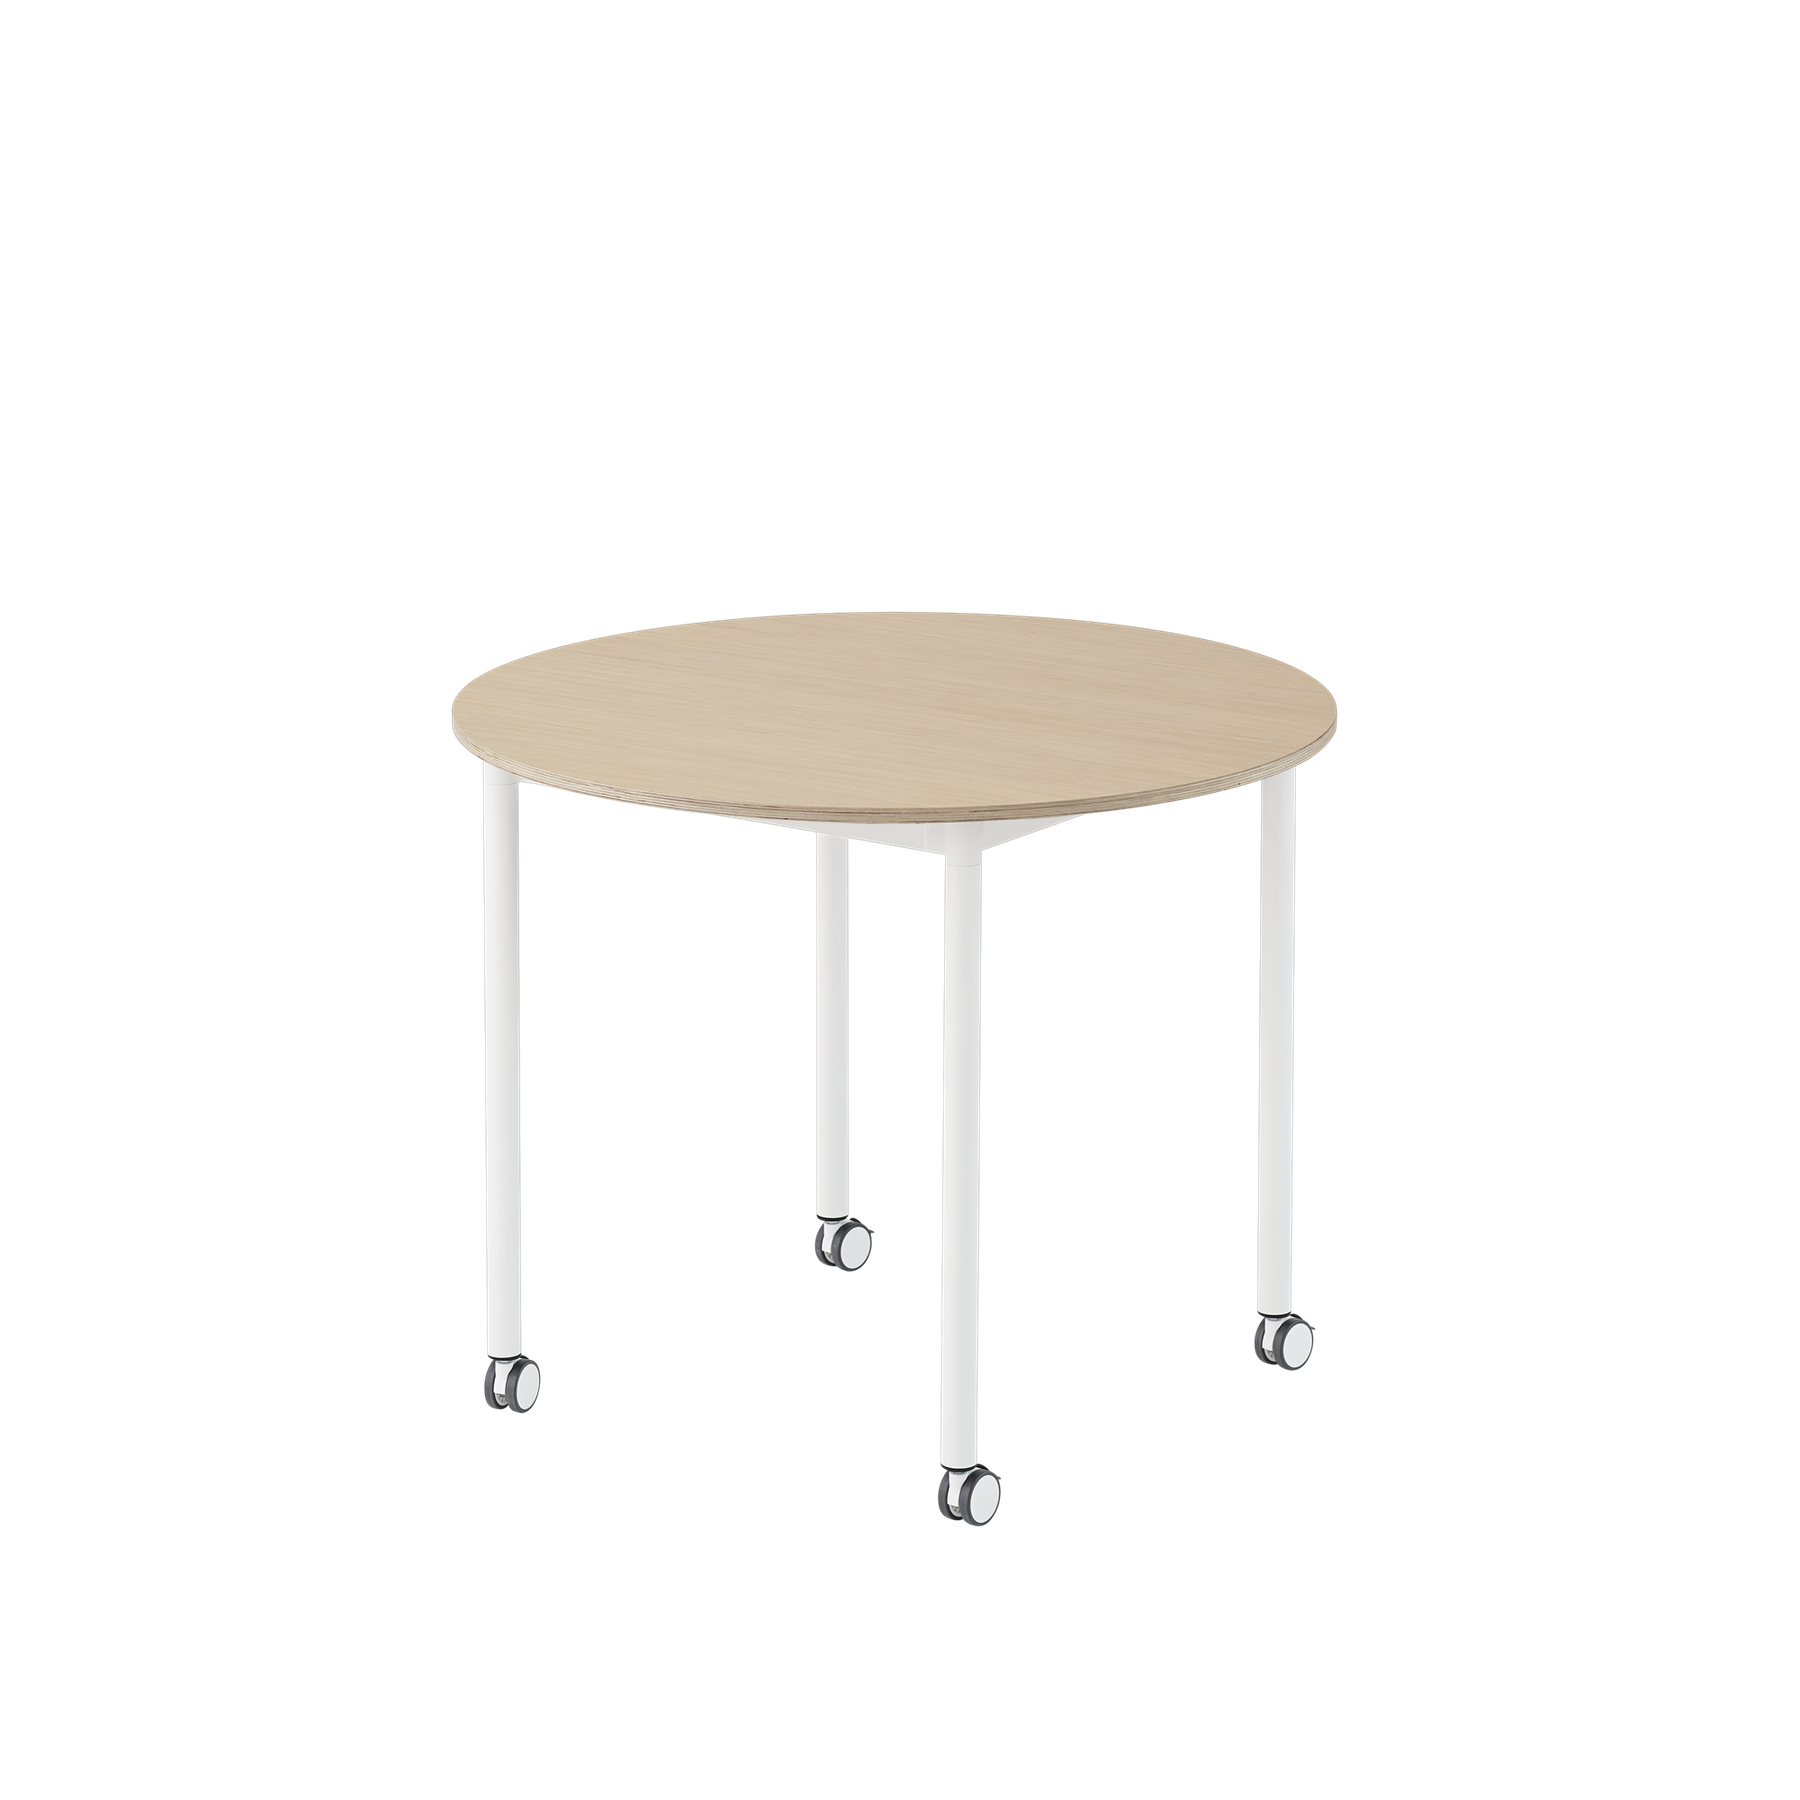 Tables From Muuto Simple Scandinavian Design In 2020 Modern Scandinavian Design Table Furniture